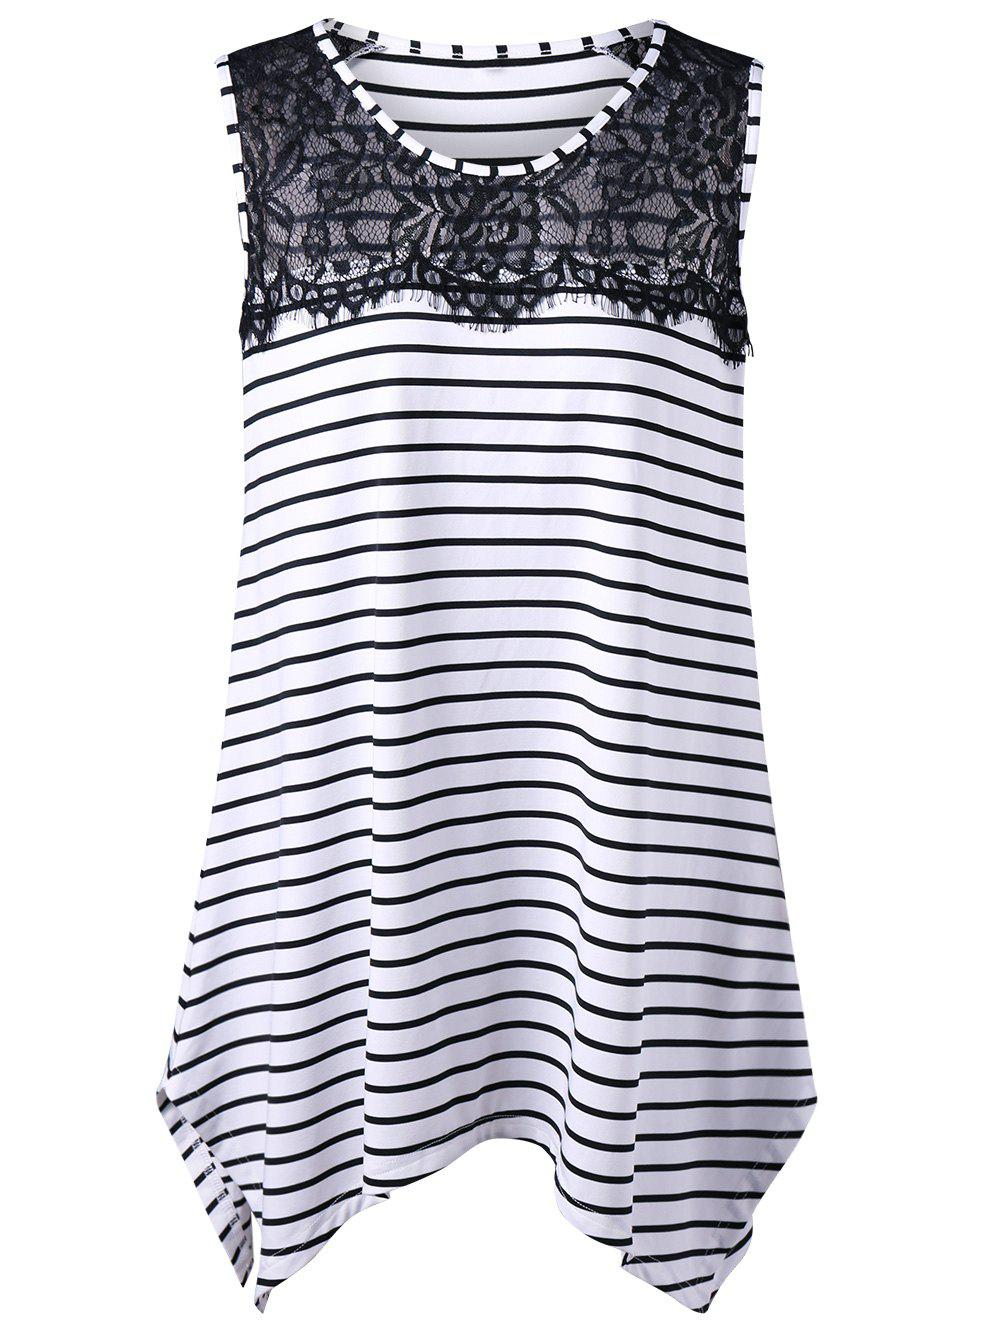 Long Lace Insert Plus Size Stripe TopWOMEN<br><br>Size: 4XL; Color: WHITE AND BLACK; Material: Cotton Blends,Polyester; Shirt Length: Long; Sleeve Length: Sleeveless; Collar: Round Neck; Style: Fashion; Season: Spring,Summer; Embellishment: Lace; Pattern Type: Striped; Weight: 0.2800kg; Package Contents: 1 x Top;